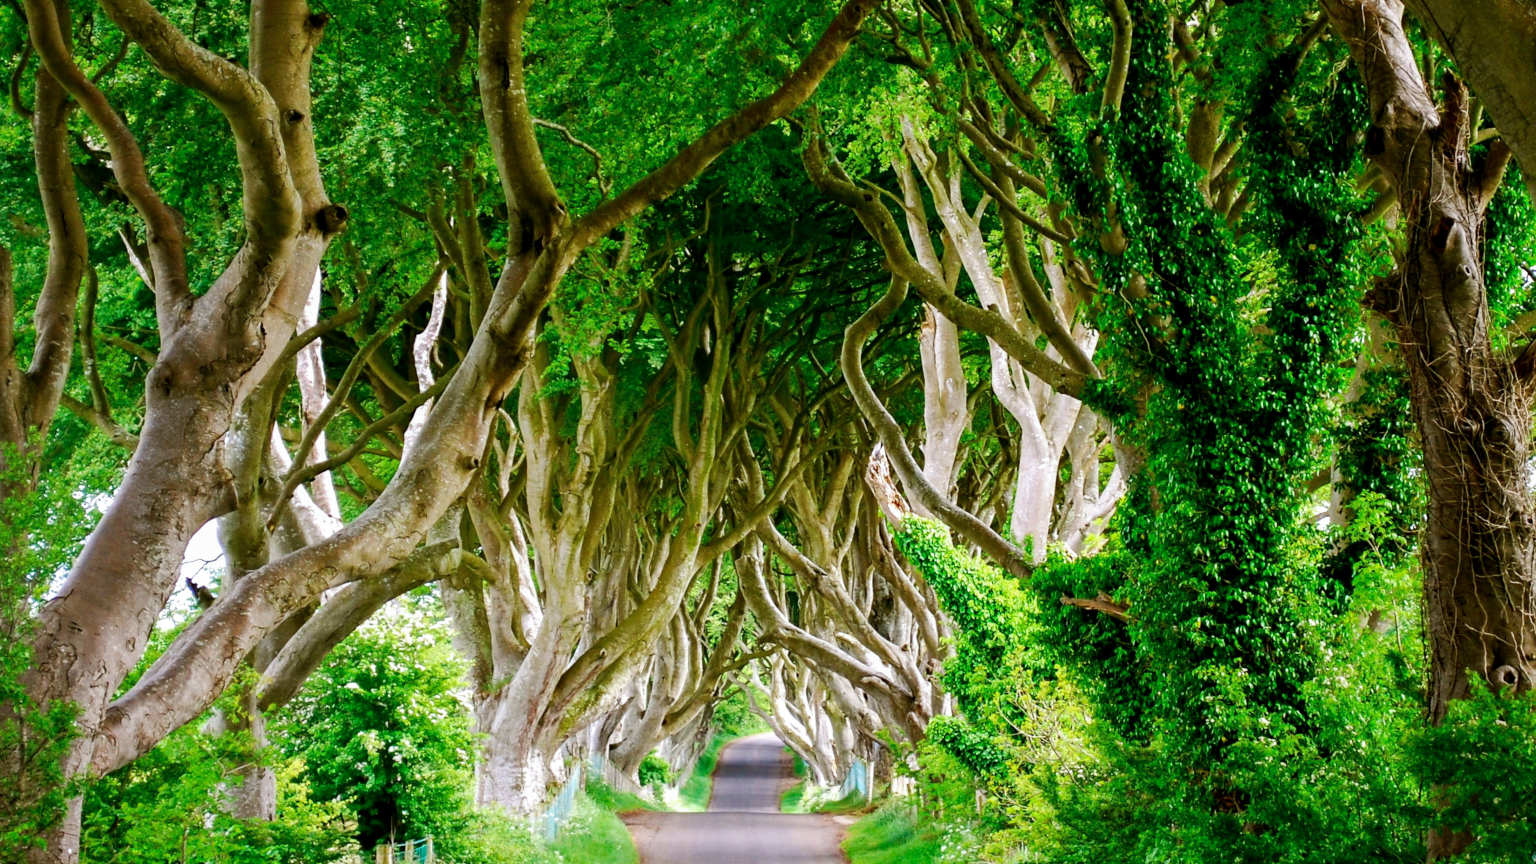 Ireland-Northern-Ireland-Dark-Hedges-Beech-Trees-Path-Road-Sean-Graham-2014-DSC2208-Lg-RGB